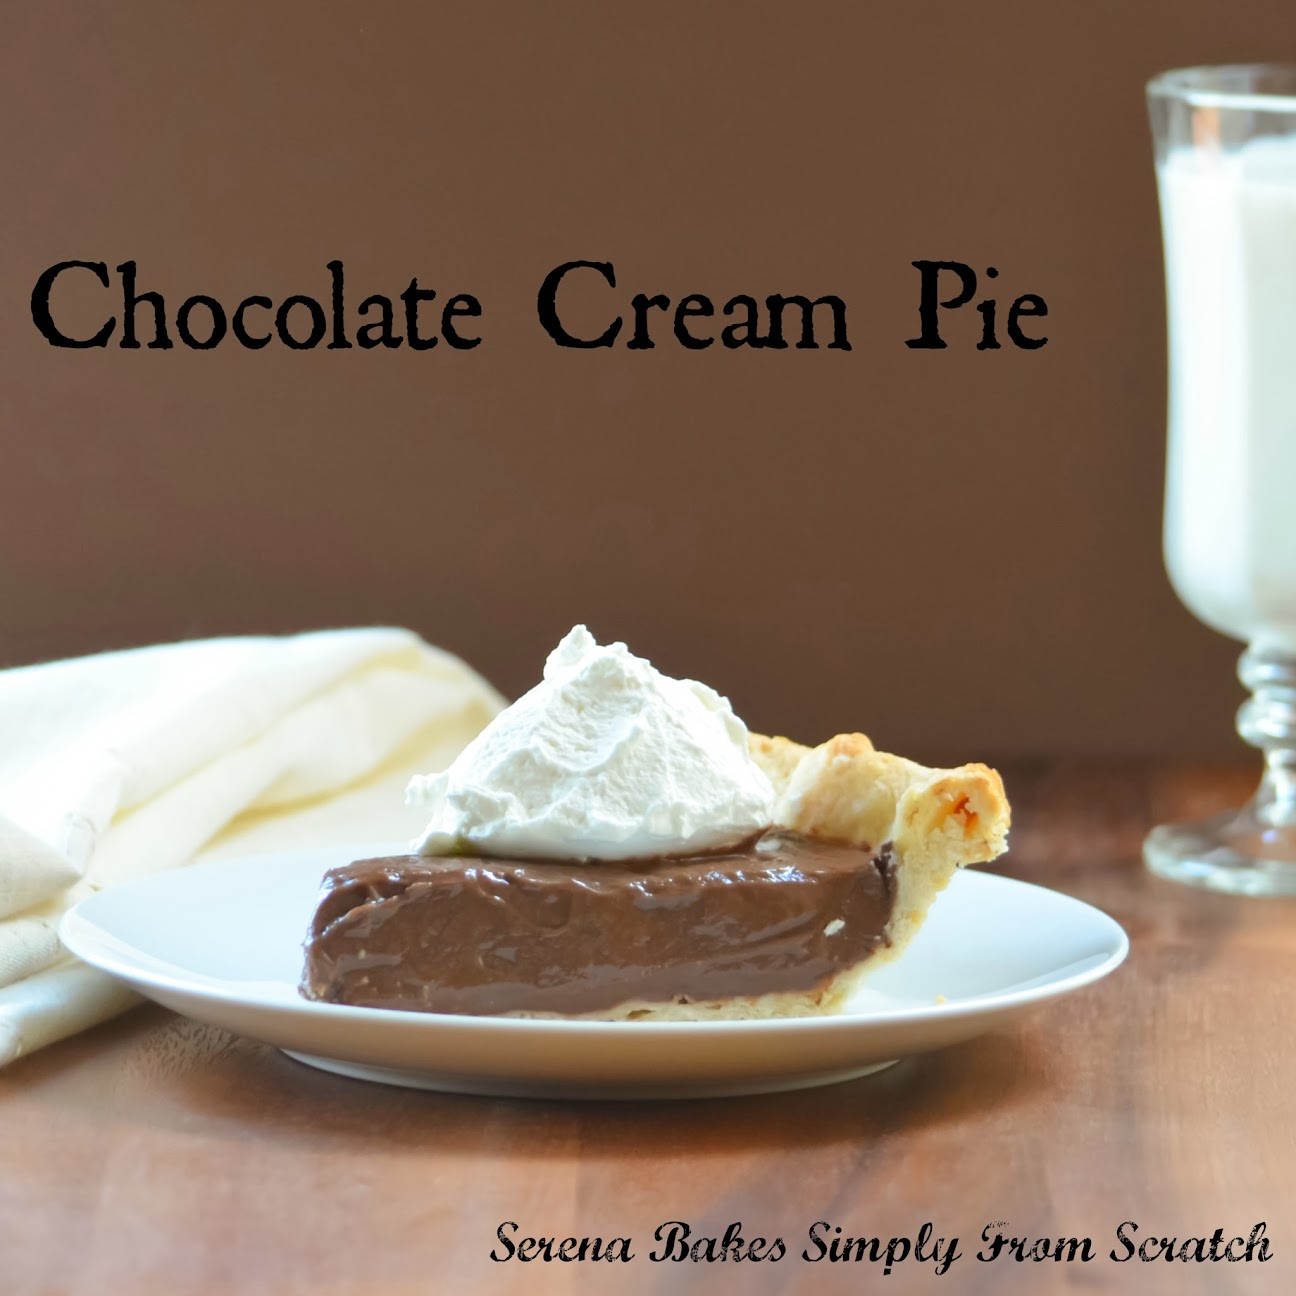 Chocolate Cream Pie With A Dairy Free Option | Serena Bakes Simply From Scratch